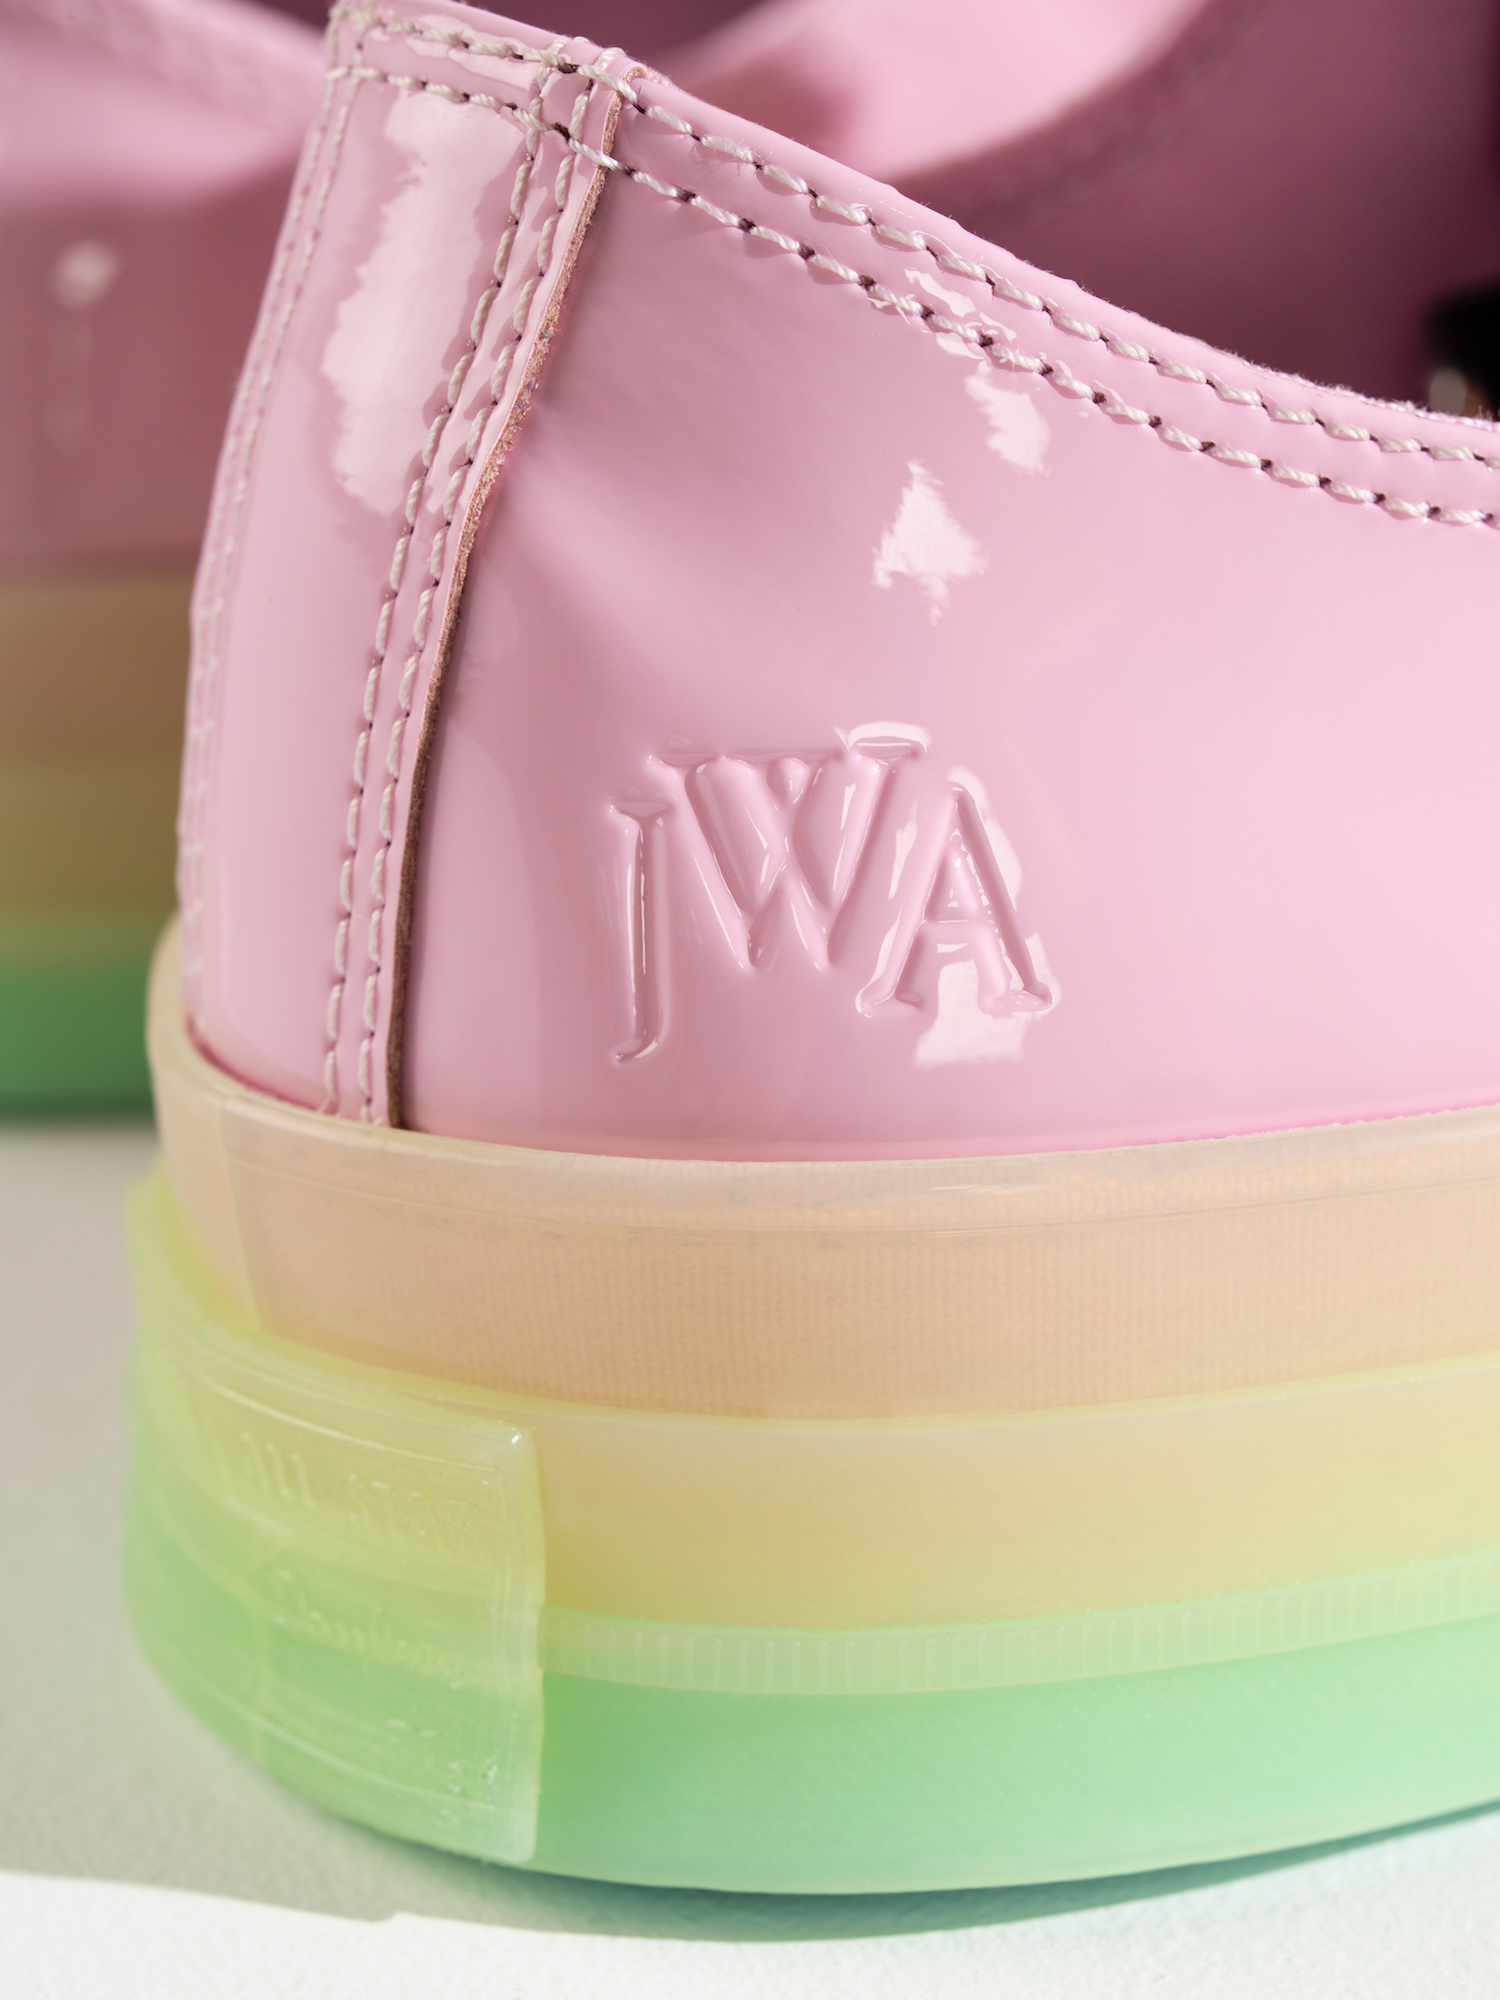 Converse x JW Anderson Chuck 70 Toy | Collater.al 10